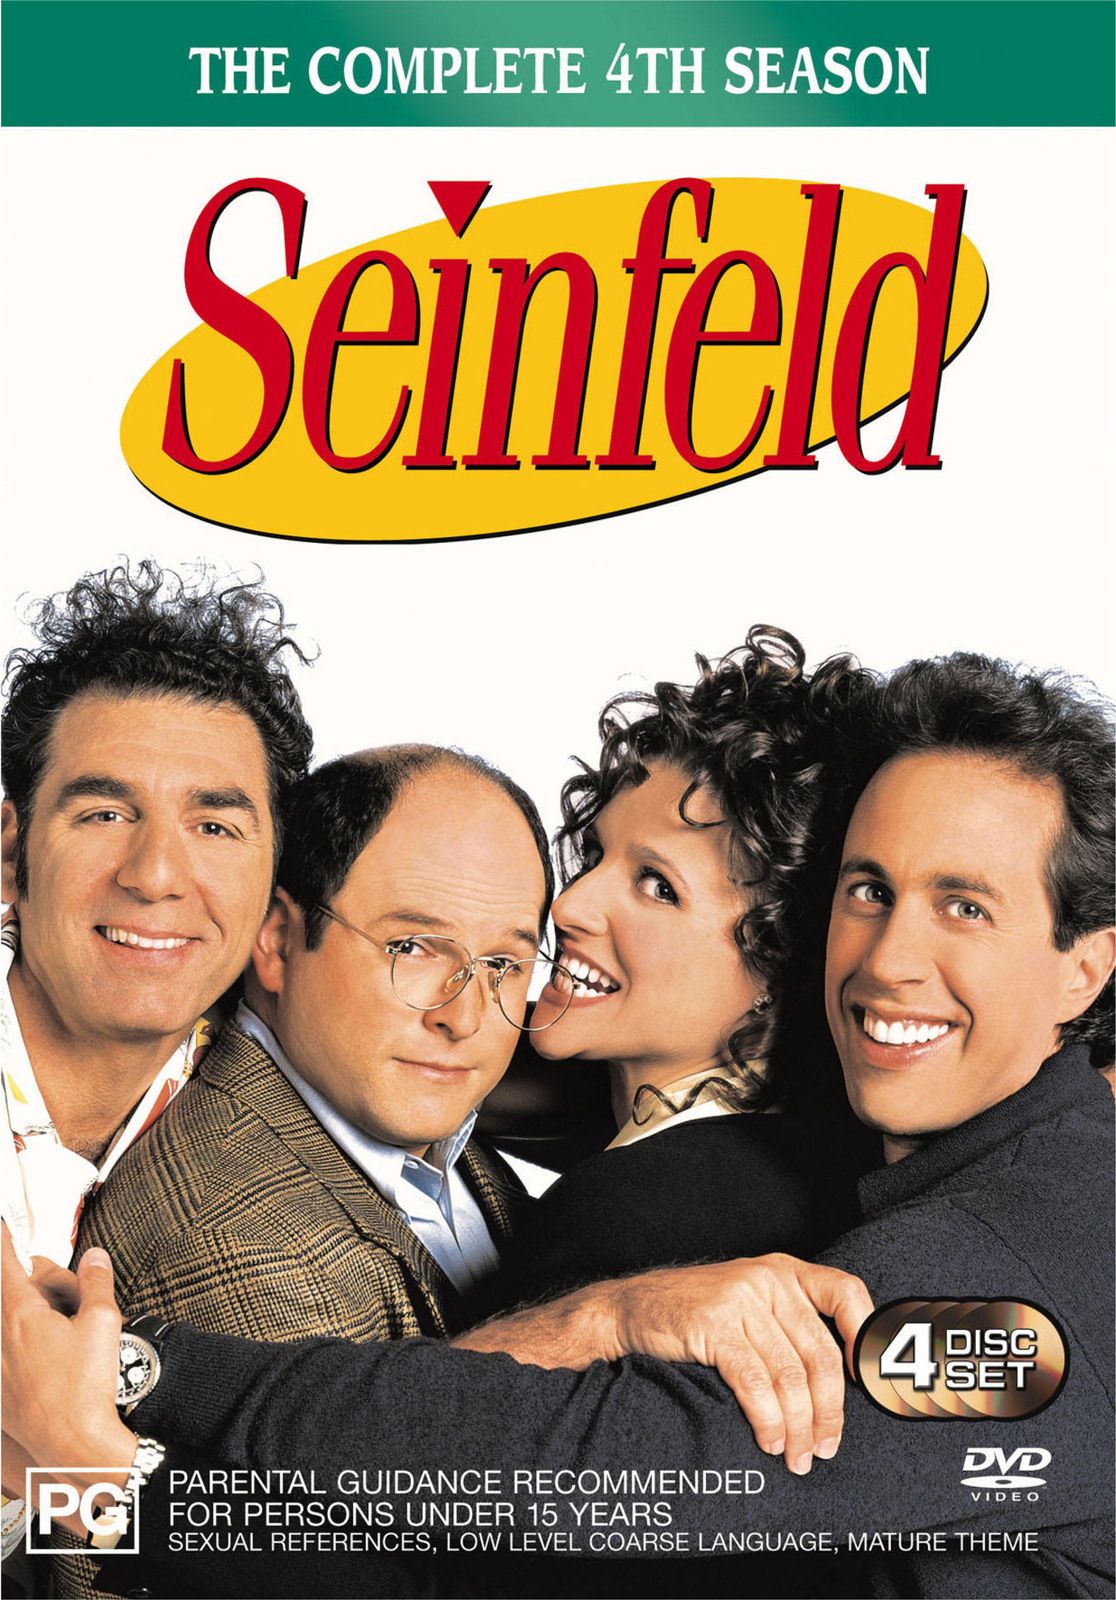 Seinfeld - The Complete 4th Season on DVD image